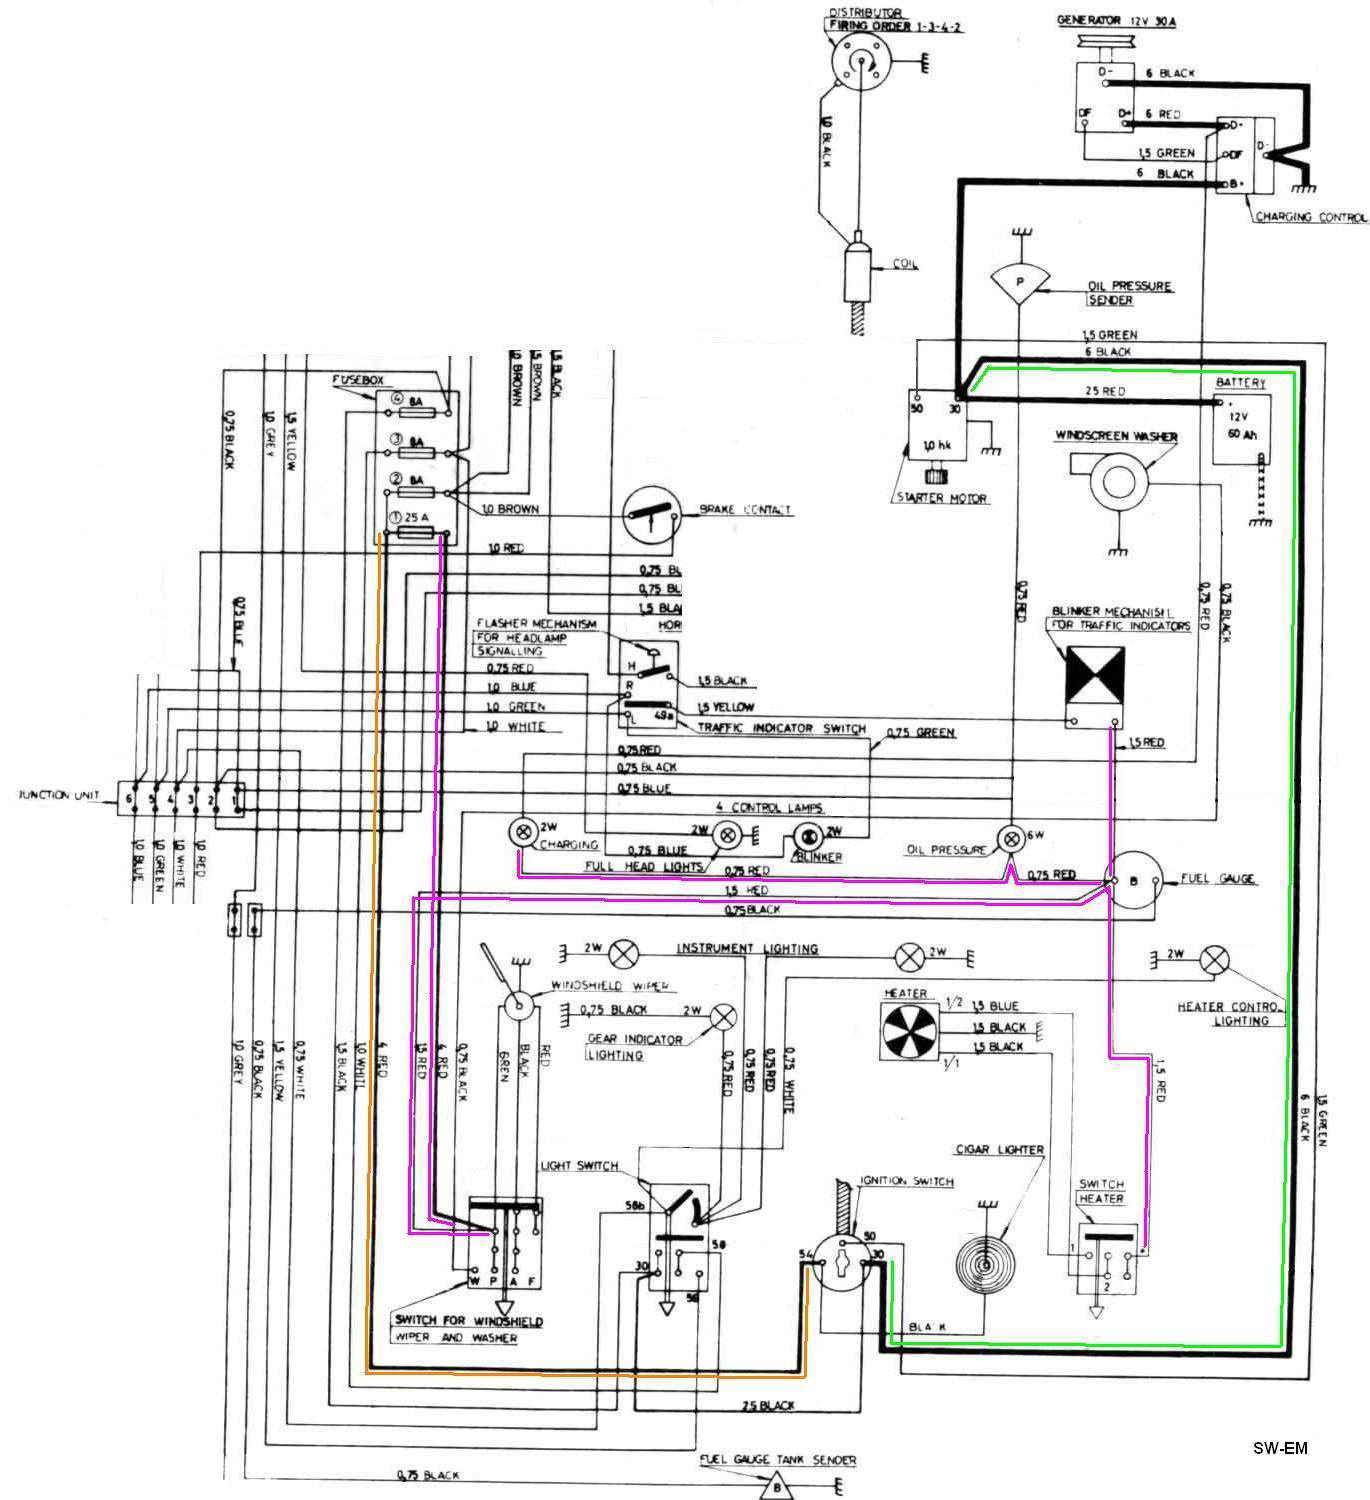 240 Volvo Engine Fuse Diagram | Wiring Schematic Diagram ... on volvo s40 fuse box location, volvo s40 fuse diagram, ford focus lighter fuse, bmw x5 lighter fuse,